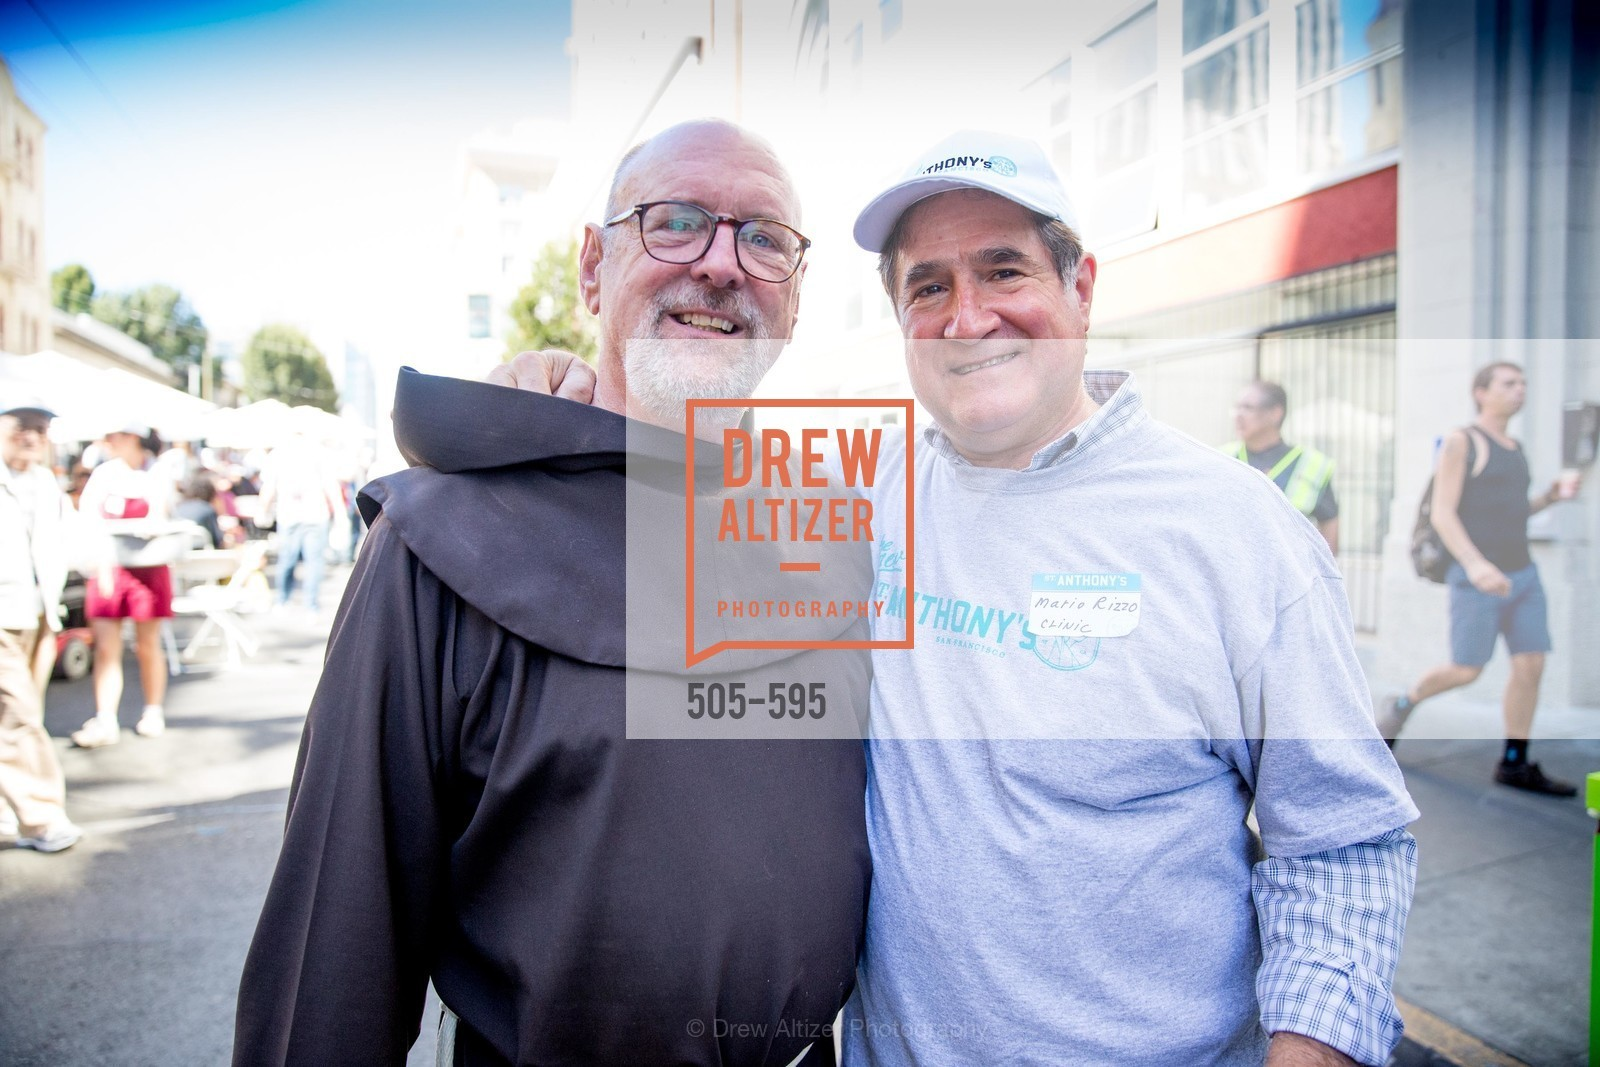 Father John Hardin, Mari Rizzo, ST. ANTHONY'S Dining Room Ribbon Cutting Ceremony, US, October 5th, 2014,Drew Altizer, Drew Altizer Photography, full-service agency, private events, San Francisco photographer, photographer california